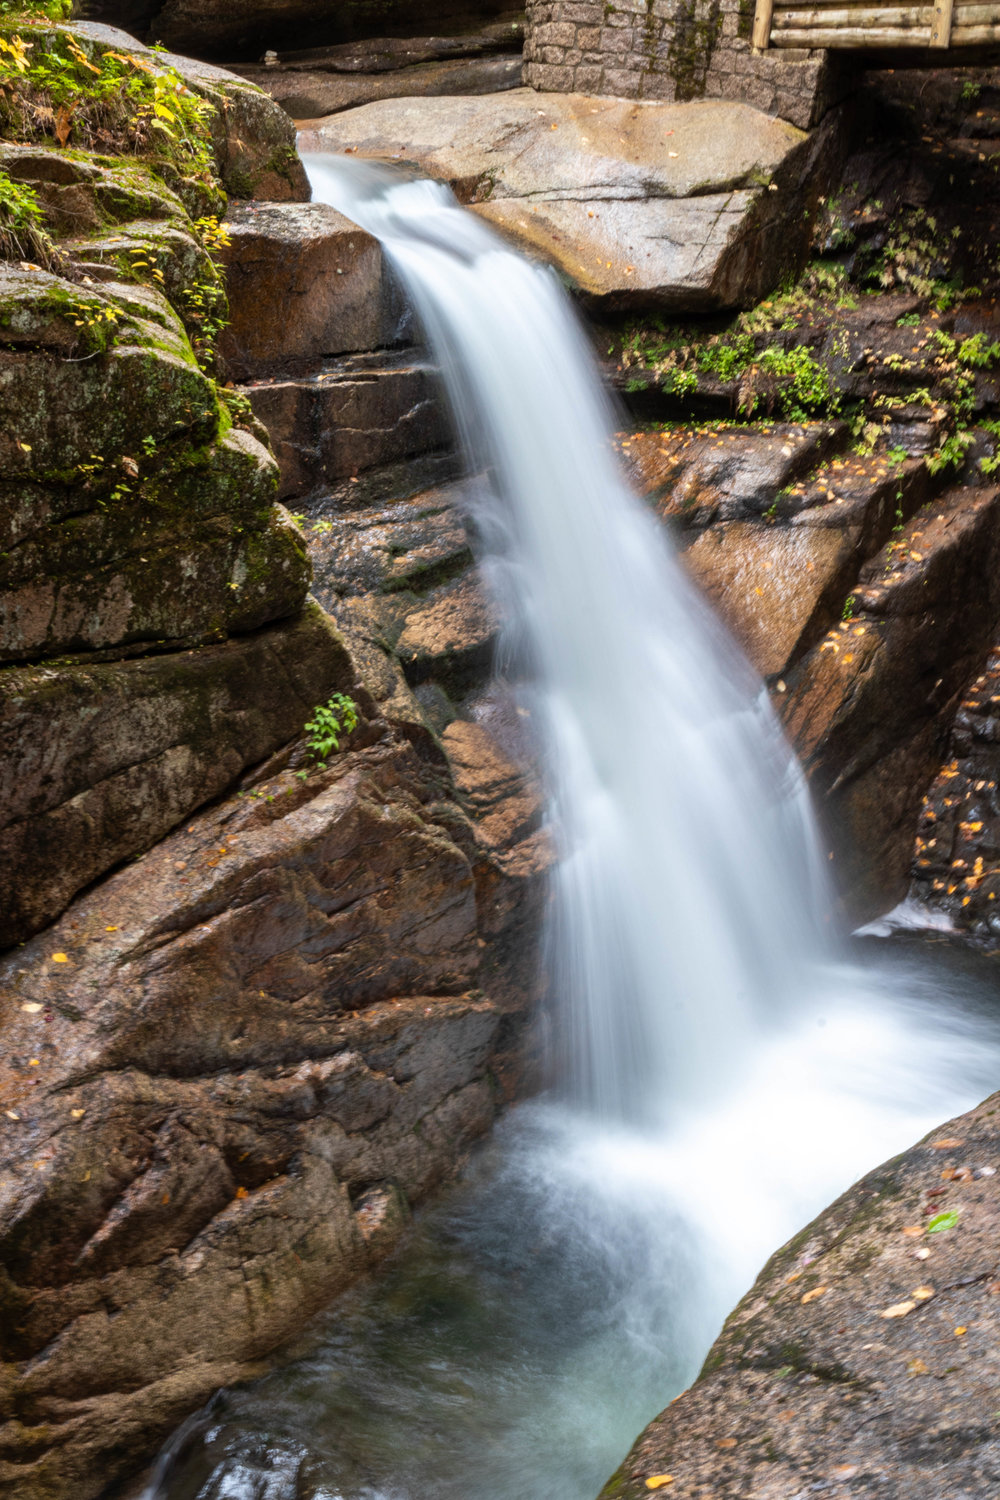 Landscape photo of a waterfall along the Kancamagus Highway in North Conway, New Hampshire by Vision Balm in Charleston, SC.